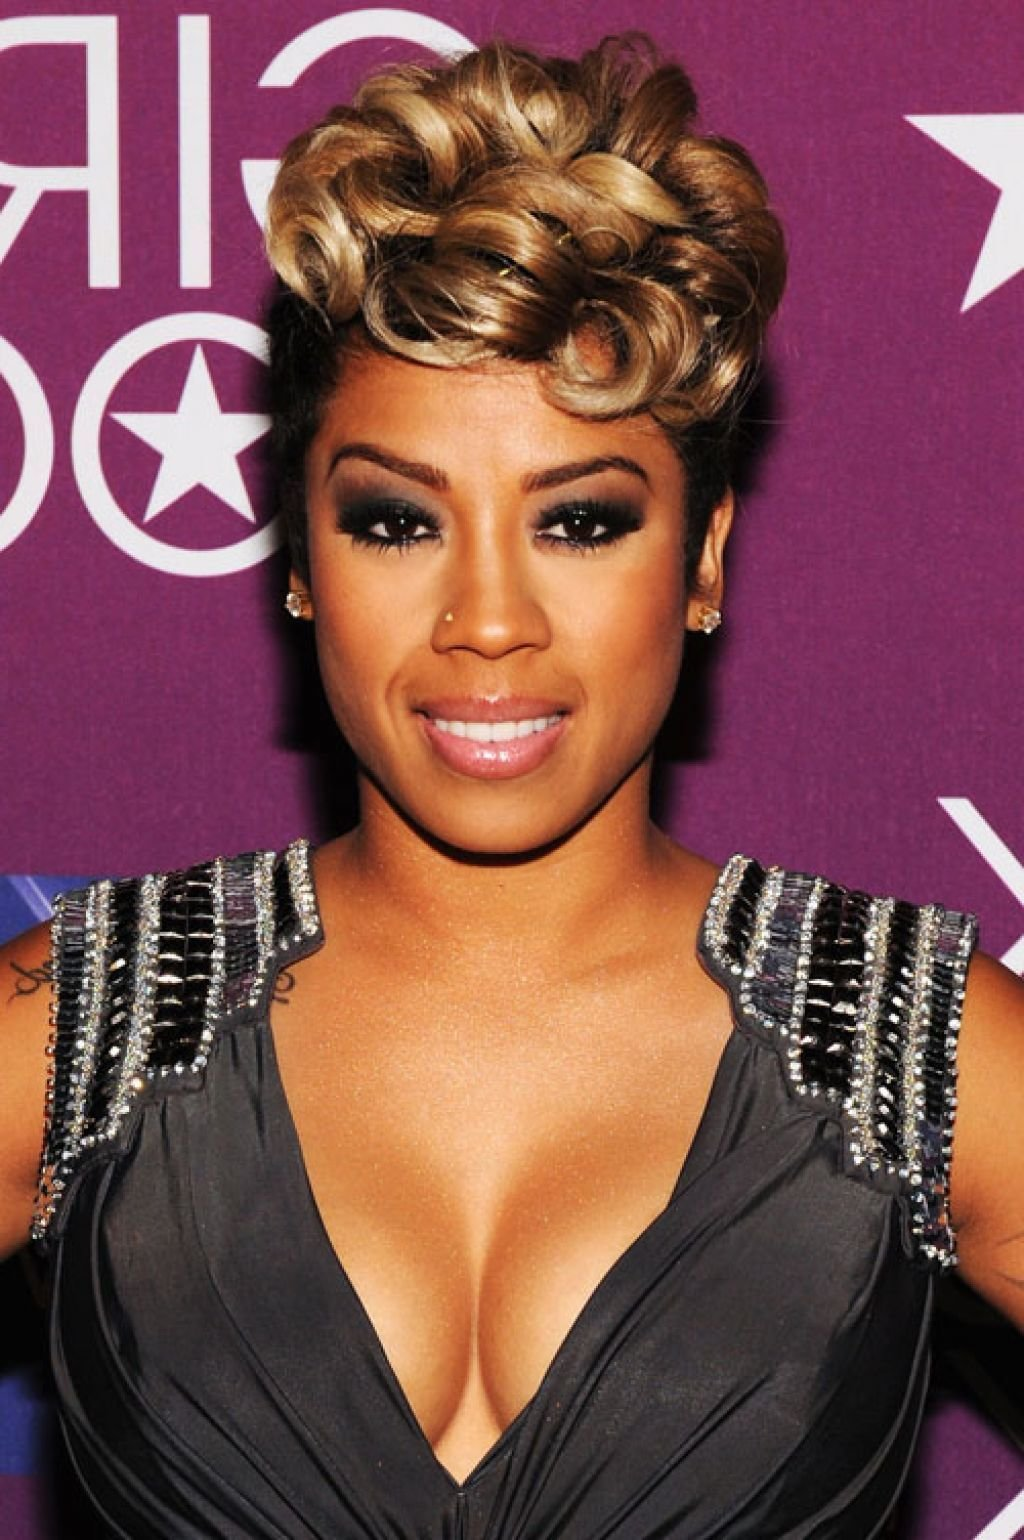 The Best Keyshia Cole Hairstyles With Braids Keyshia Cole Short Hairstyles In 2019 Keyshia Cole Pictures